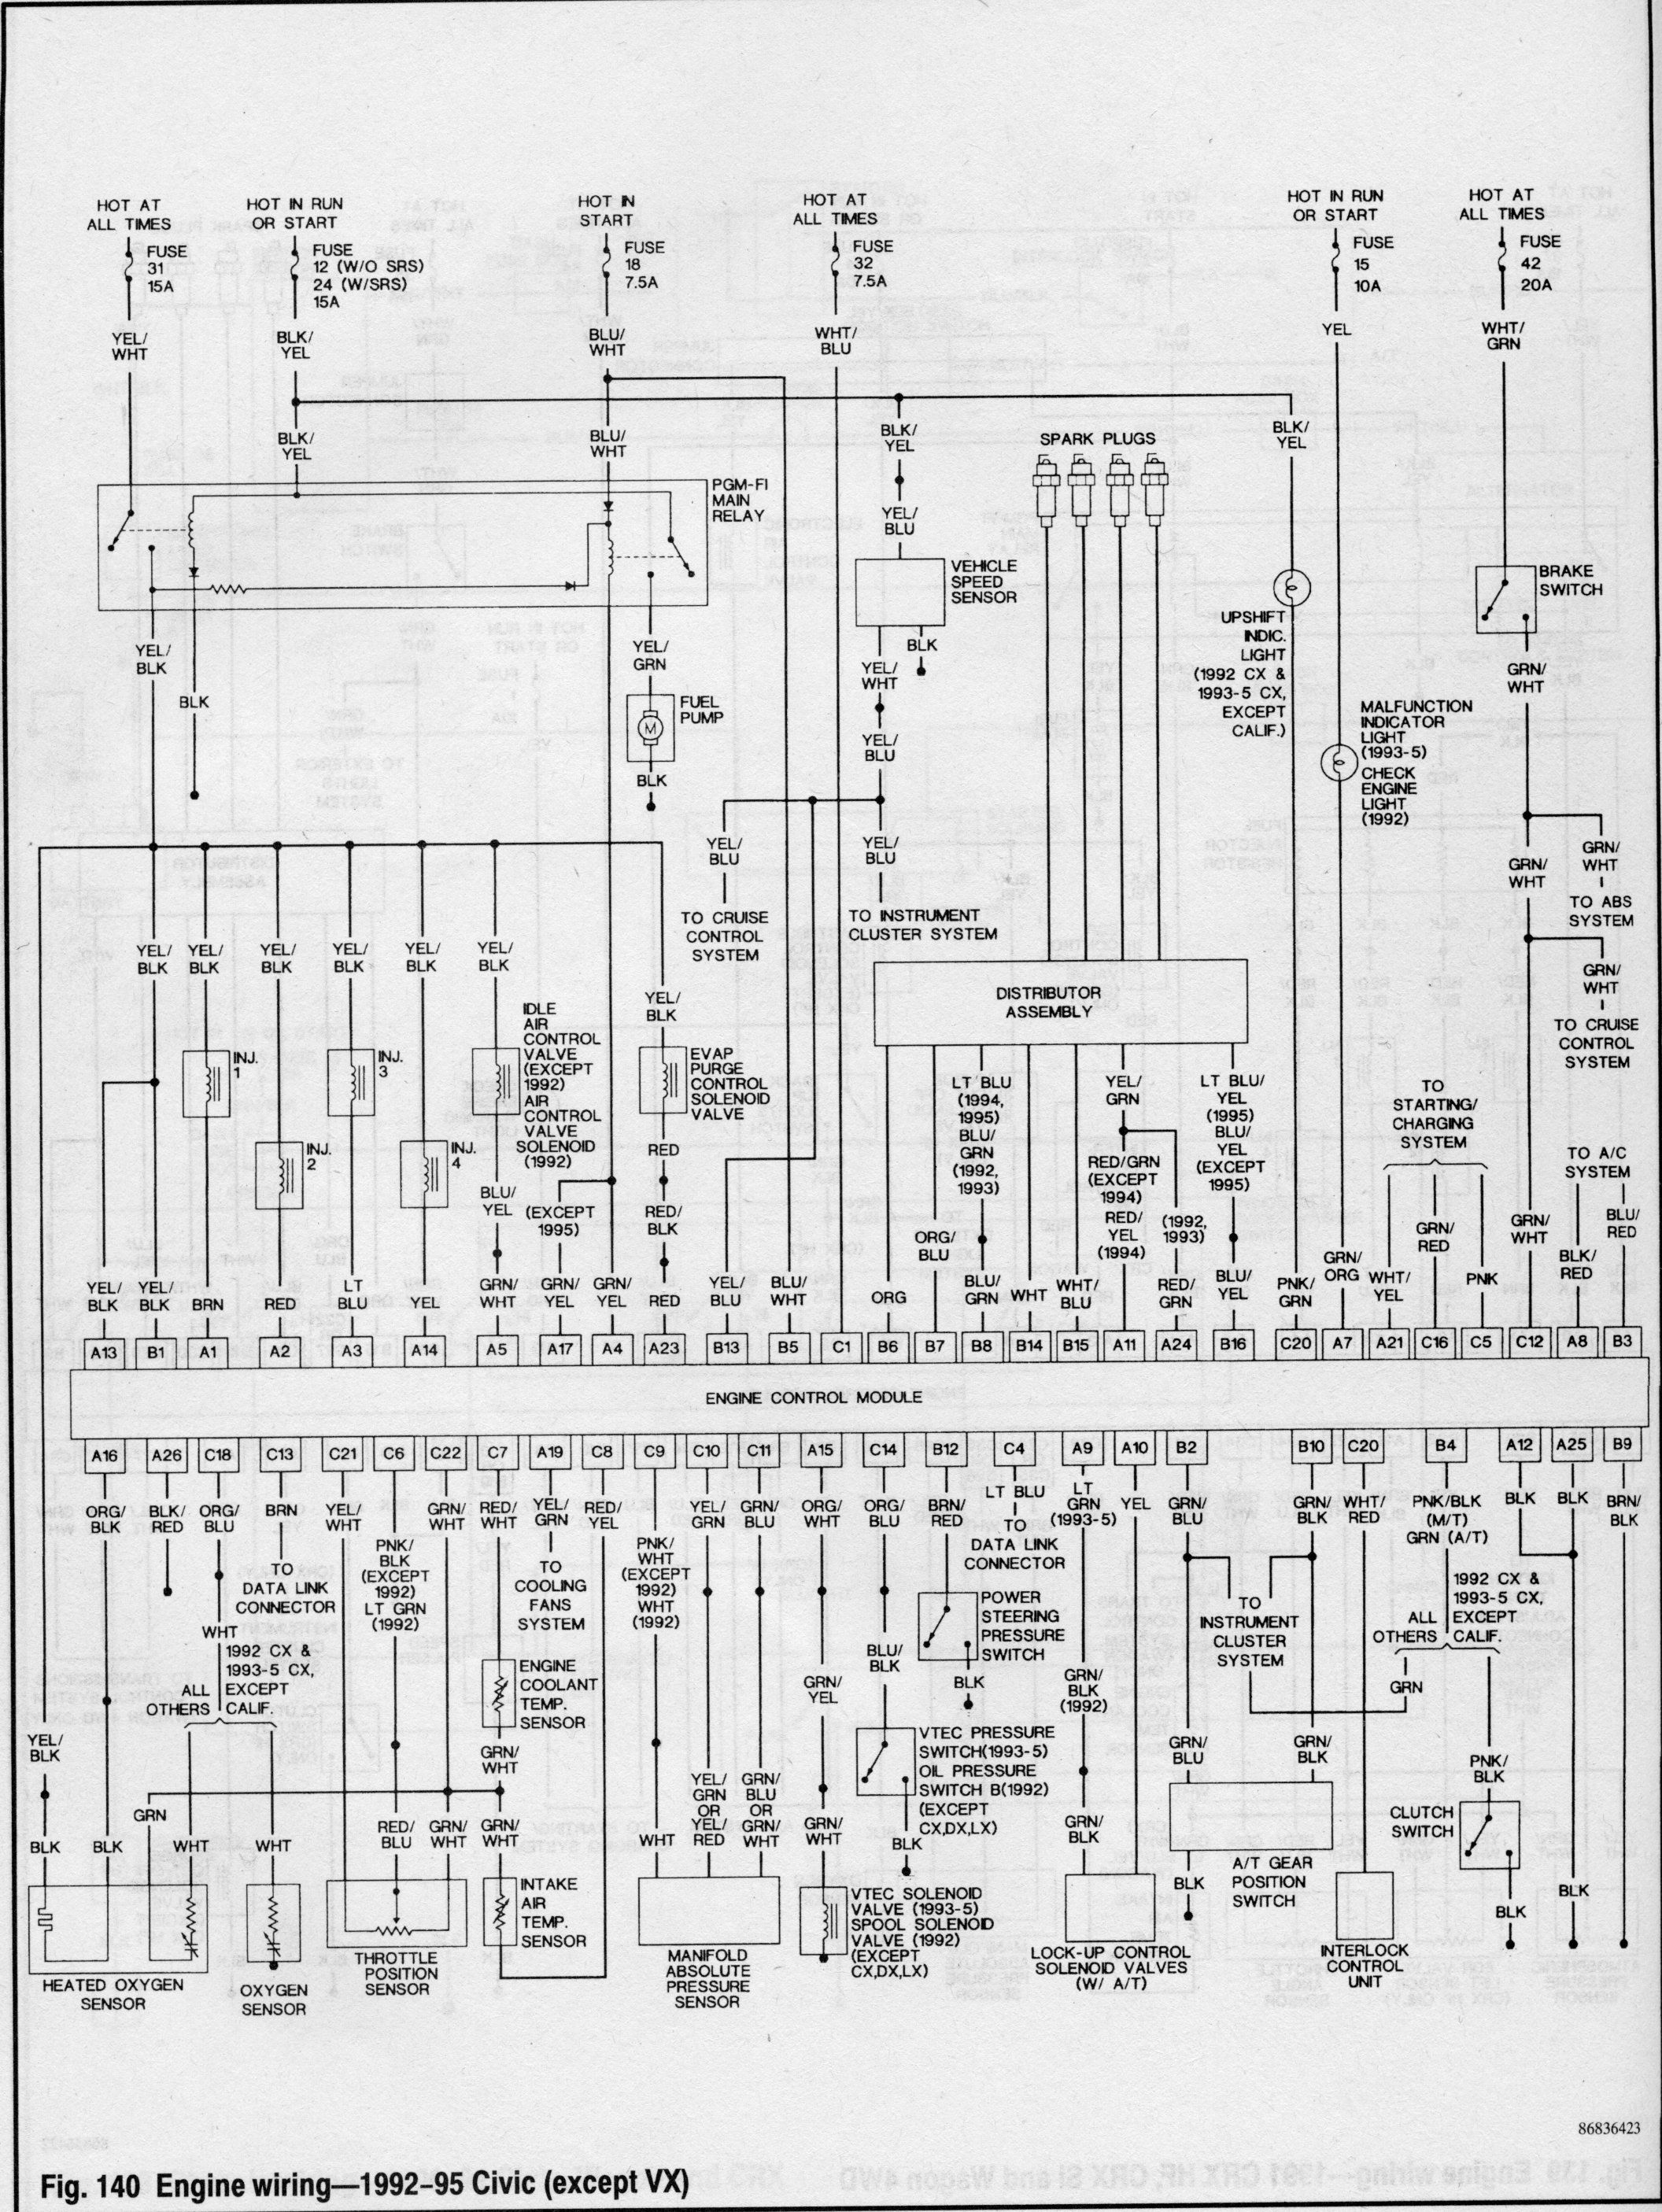 b18c wiring diagram pinout diagrams \u2022 wiring diagrams j squared co Basic Electrical Wiring Diagrams at gsmx.co